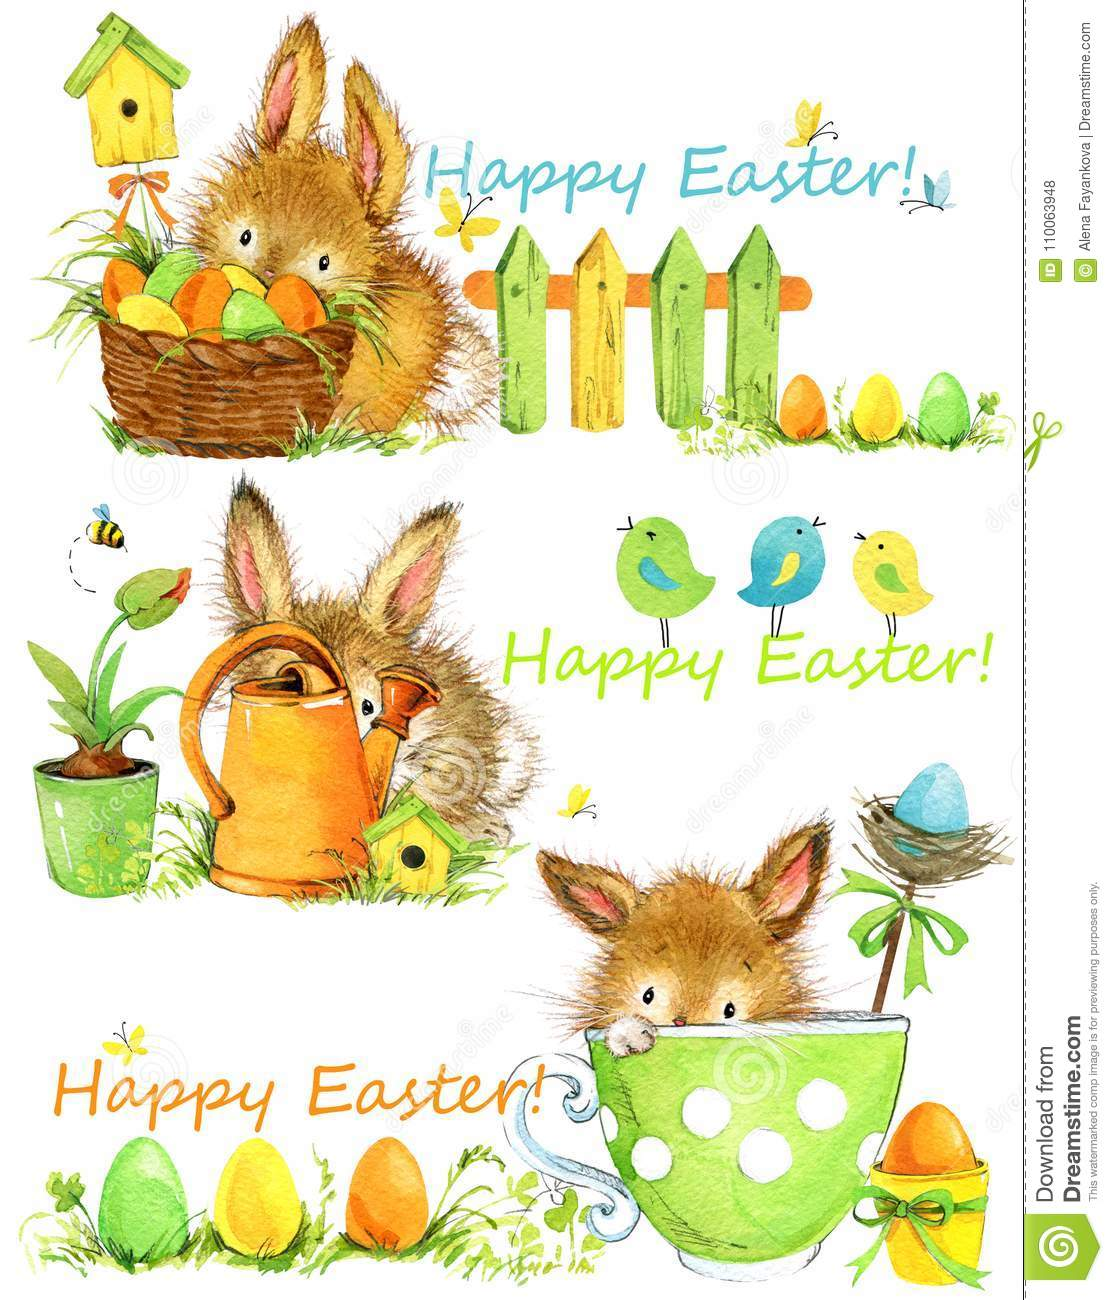 Happy Easter. Easter elements Set of banners. cute bunny hand draw watercolor illustration